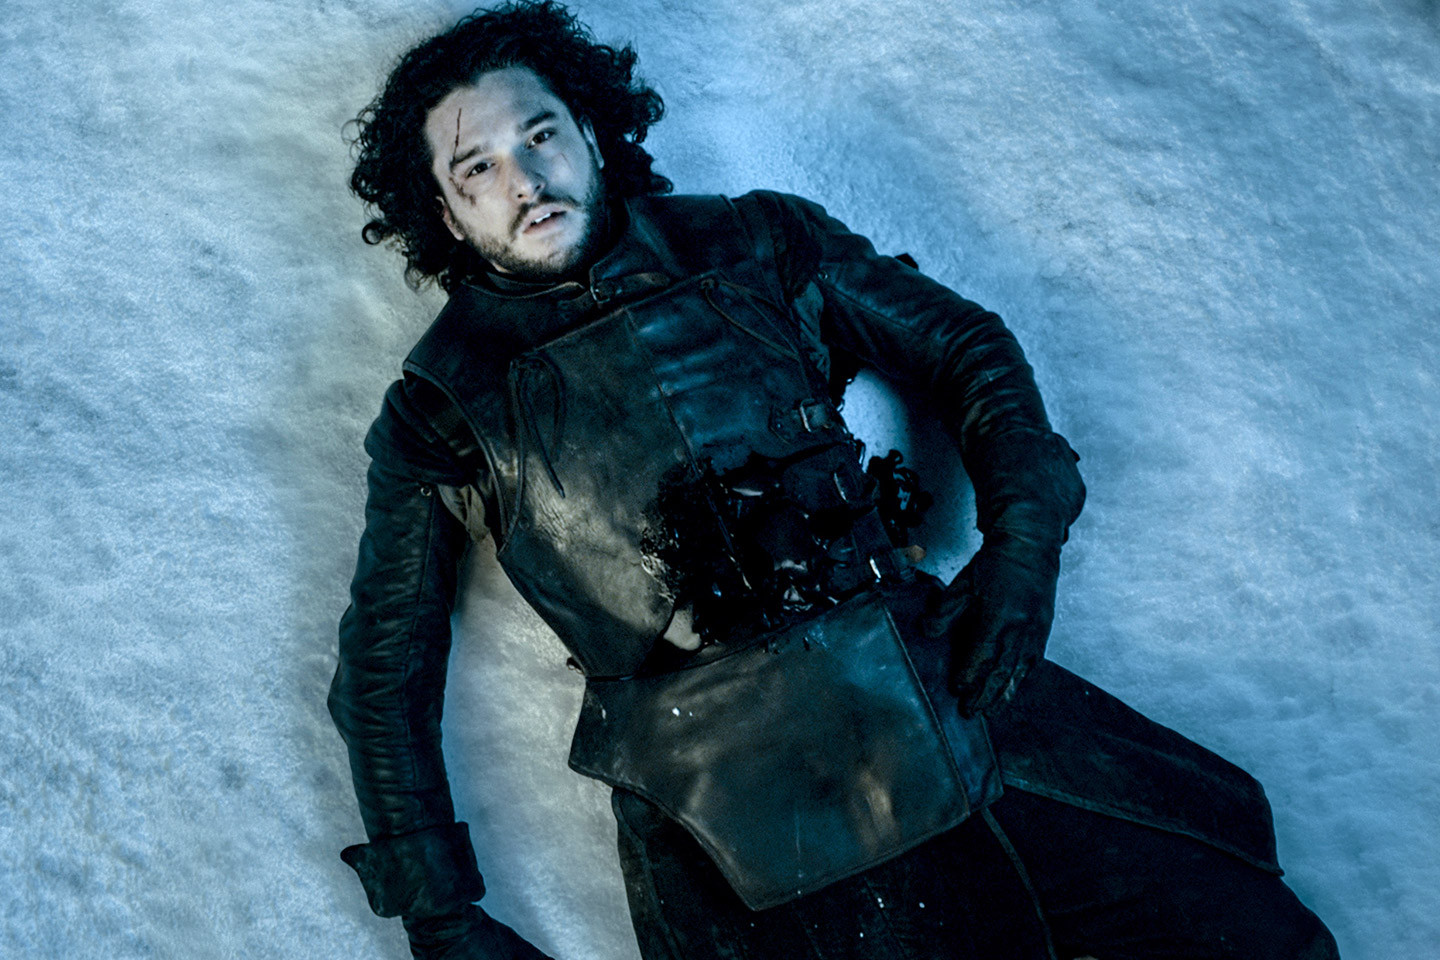 Jon Snow isn't doing very well.